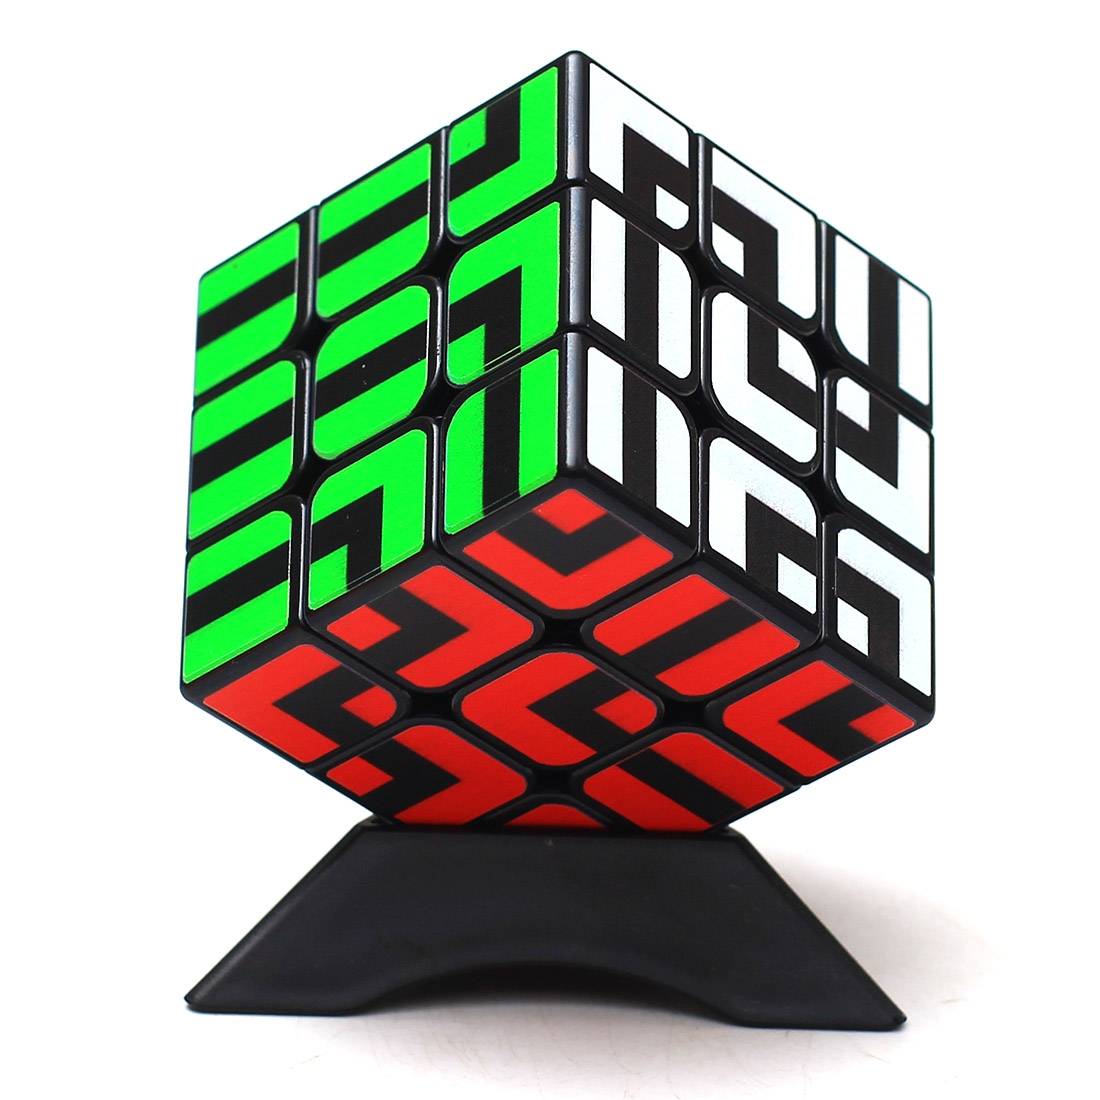 Z-cube Maze Type 3x3x3 Magic Cube Puzzle Cube Intelligent Gift Toys For Children - Black